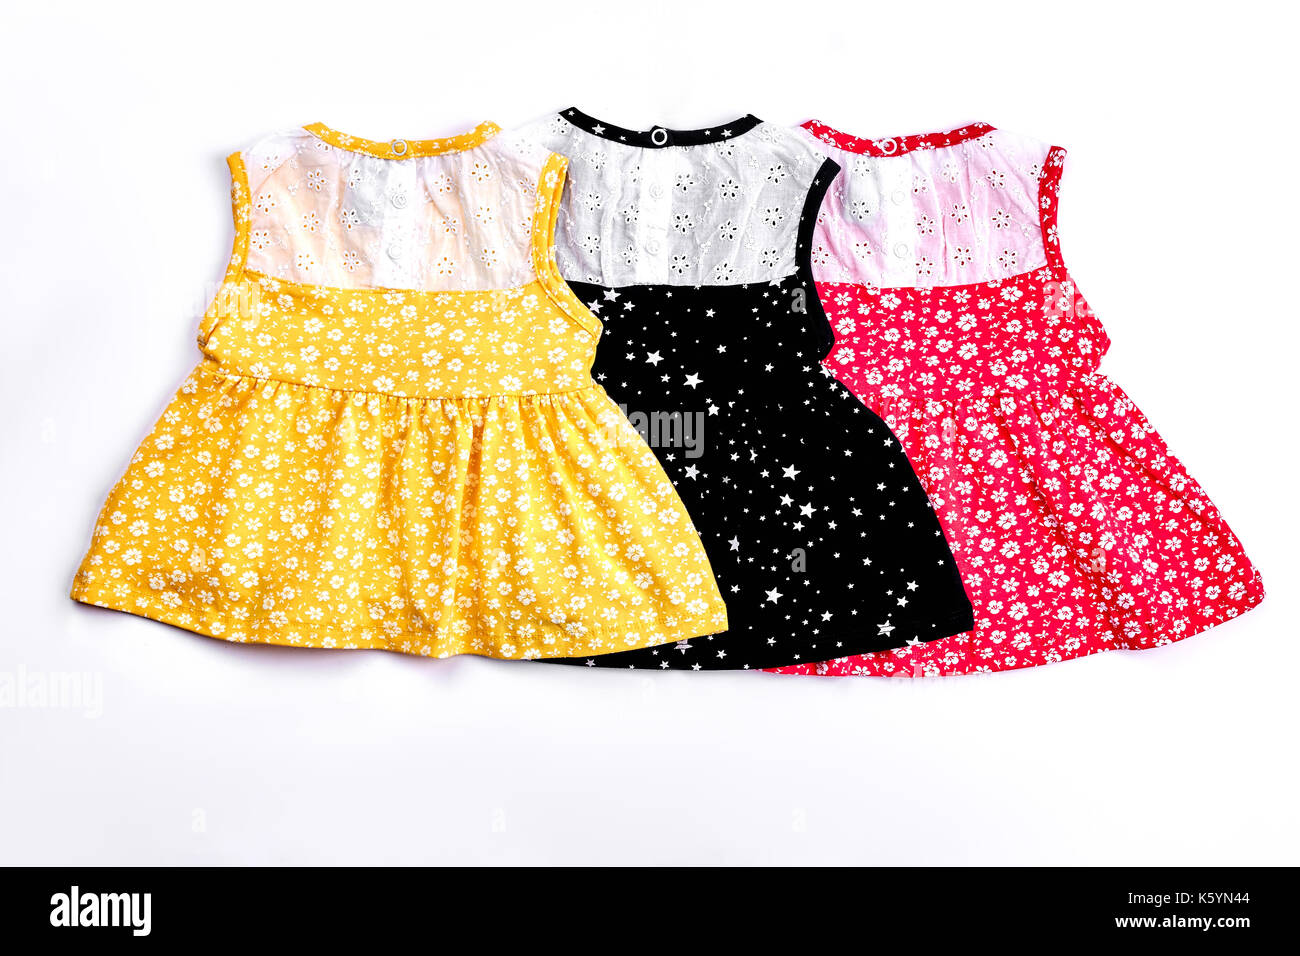 Infant Girl Cute Design Sundresses Collection Of Beautiful